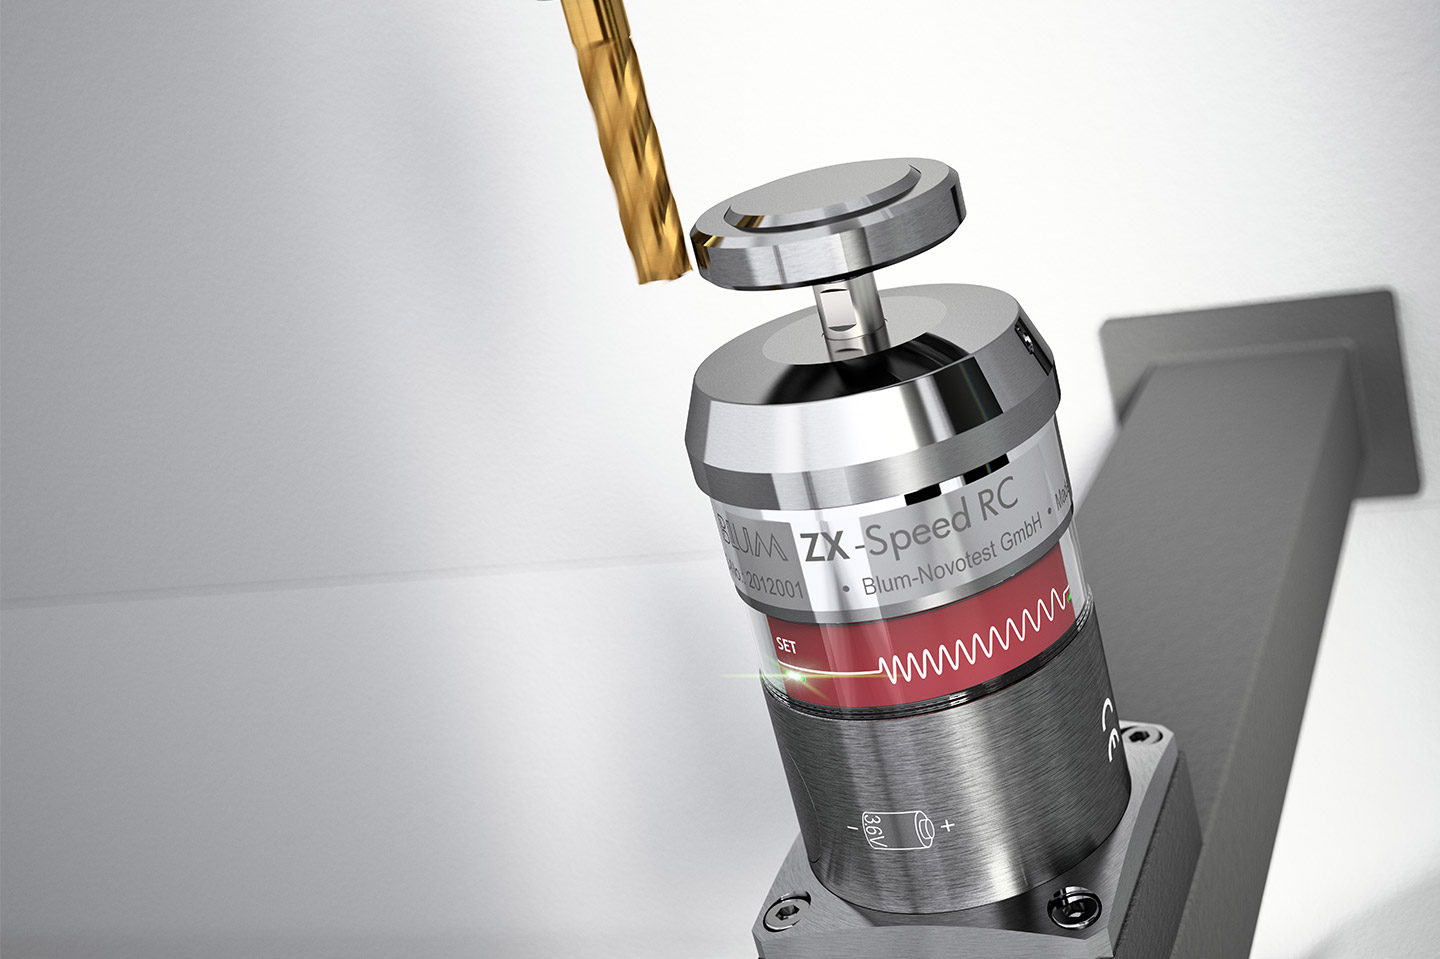 BLUM tool measuring probe for workpiece measurement and tool